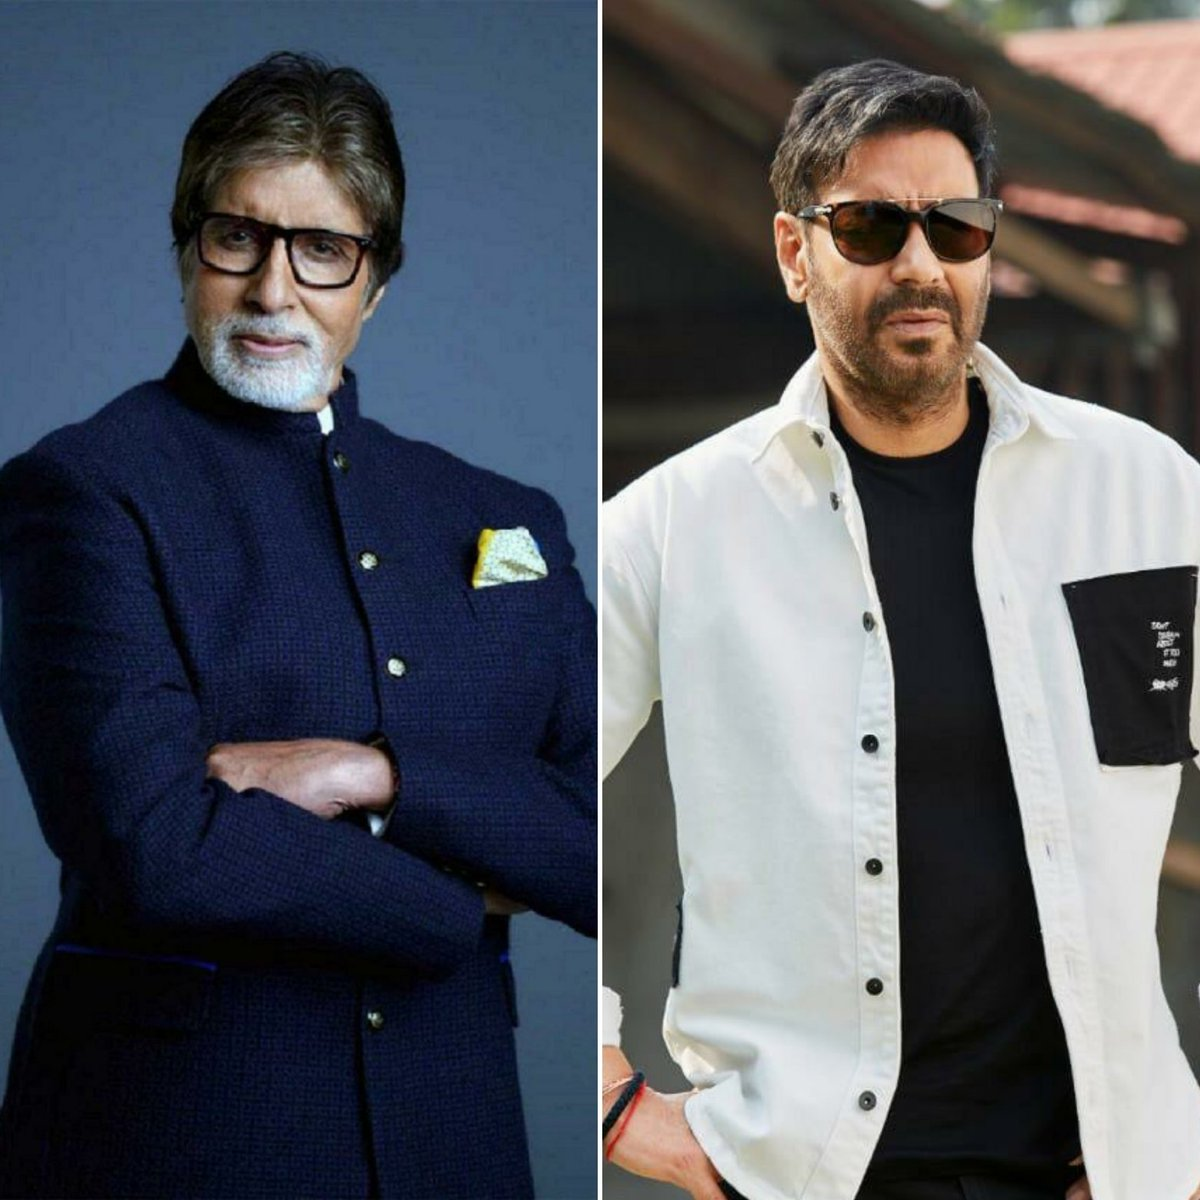 .@SrBachchan & @ajaydevgn are all set to reunite after 7 years for a thrilling, absolute edge-of-the-seat human-drama titled #Mayday, being produced by Ajay Devgn Ffilms & directed by #AjayDevgn. He's directing the legend for the first time.   (1/2)